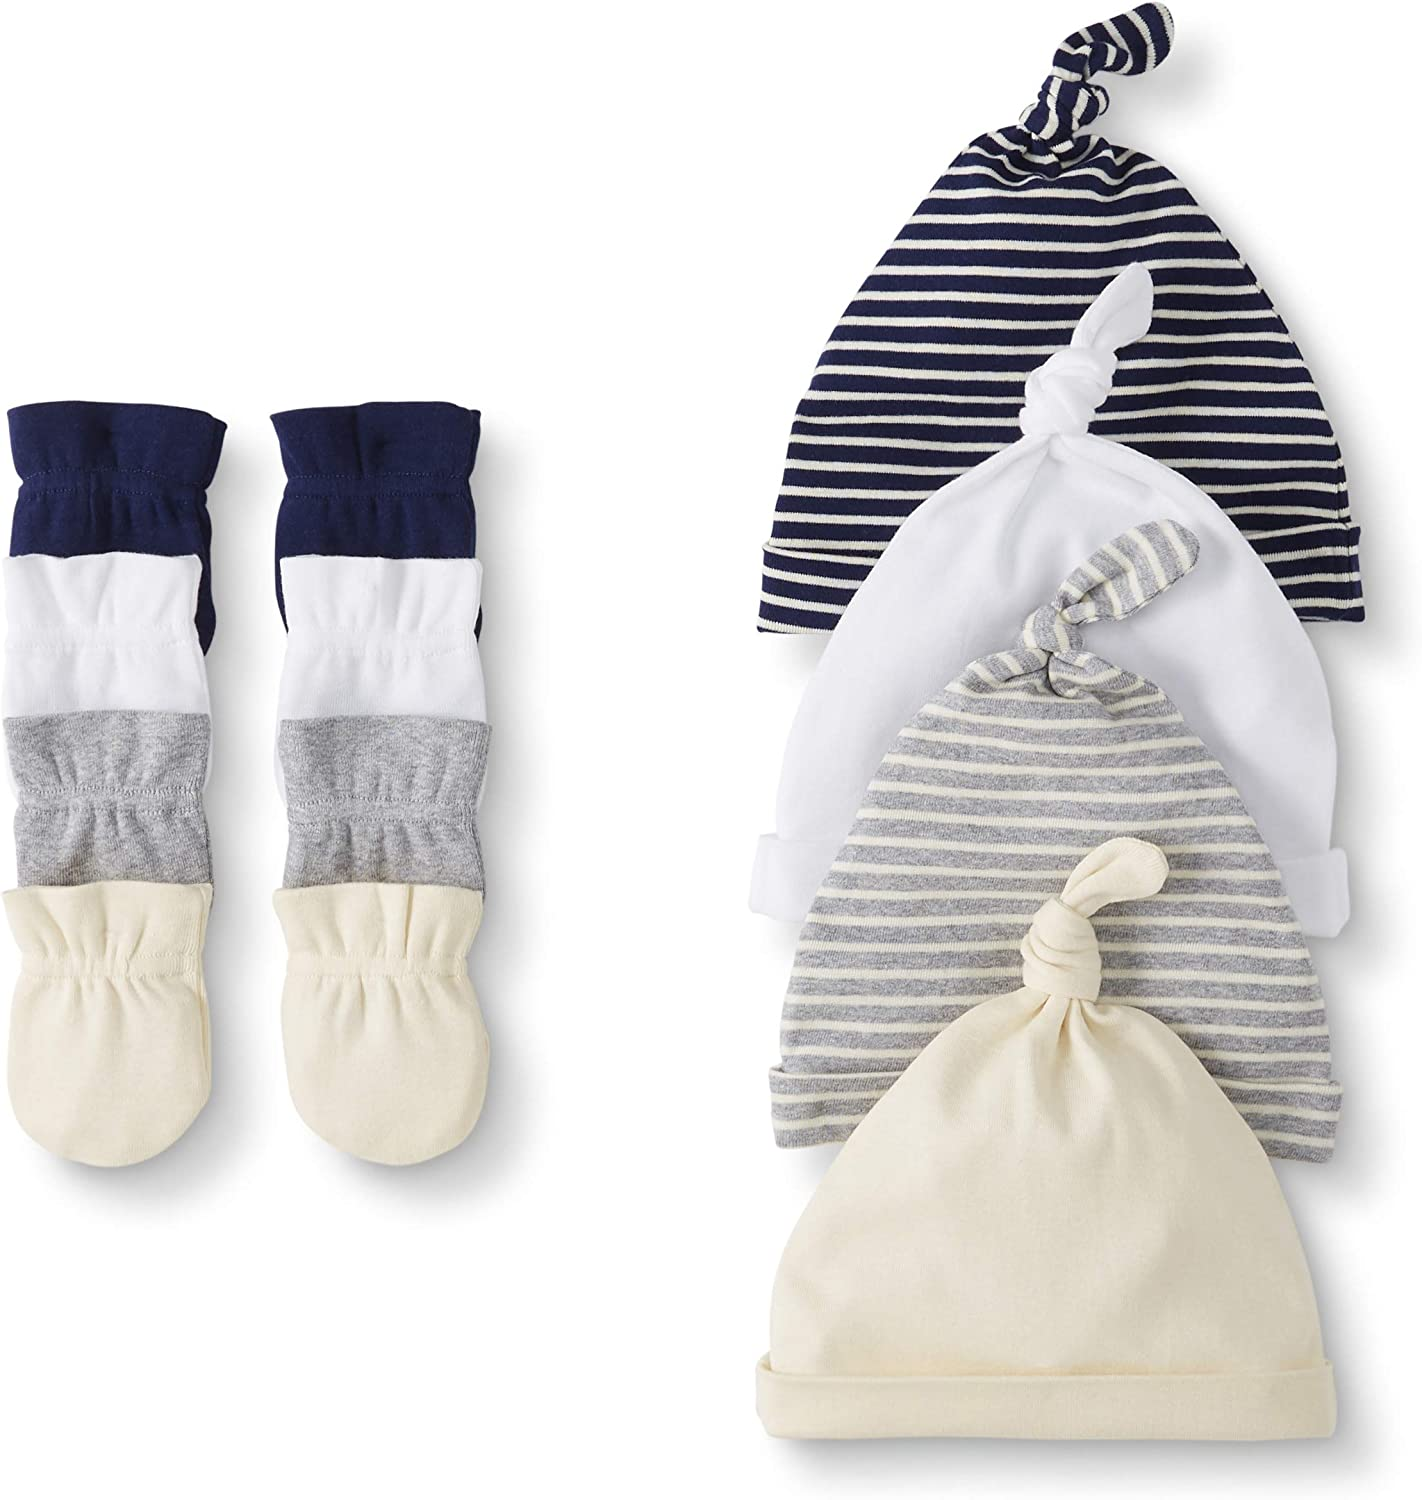 Infant-and-Toddler-Layette-Sets Unisex beb/é Moon and Back Baby Gift Sets